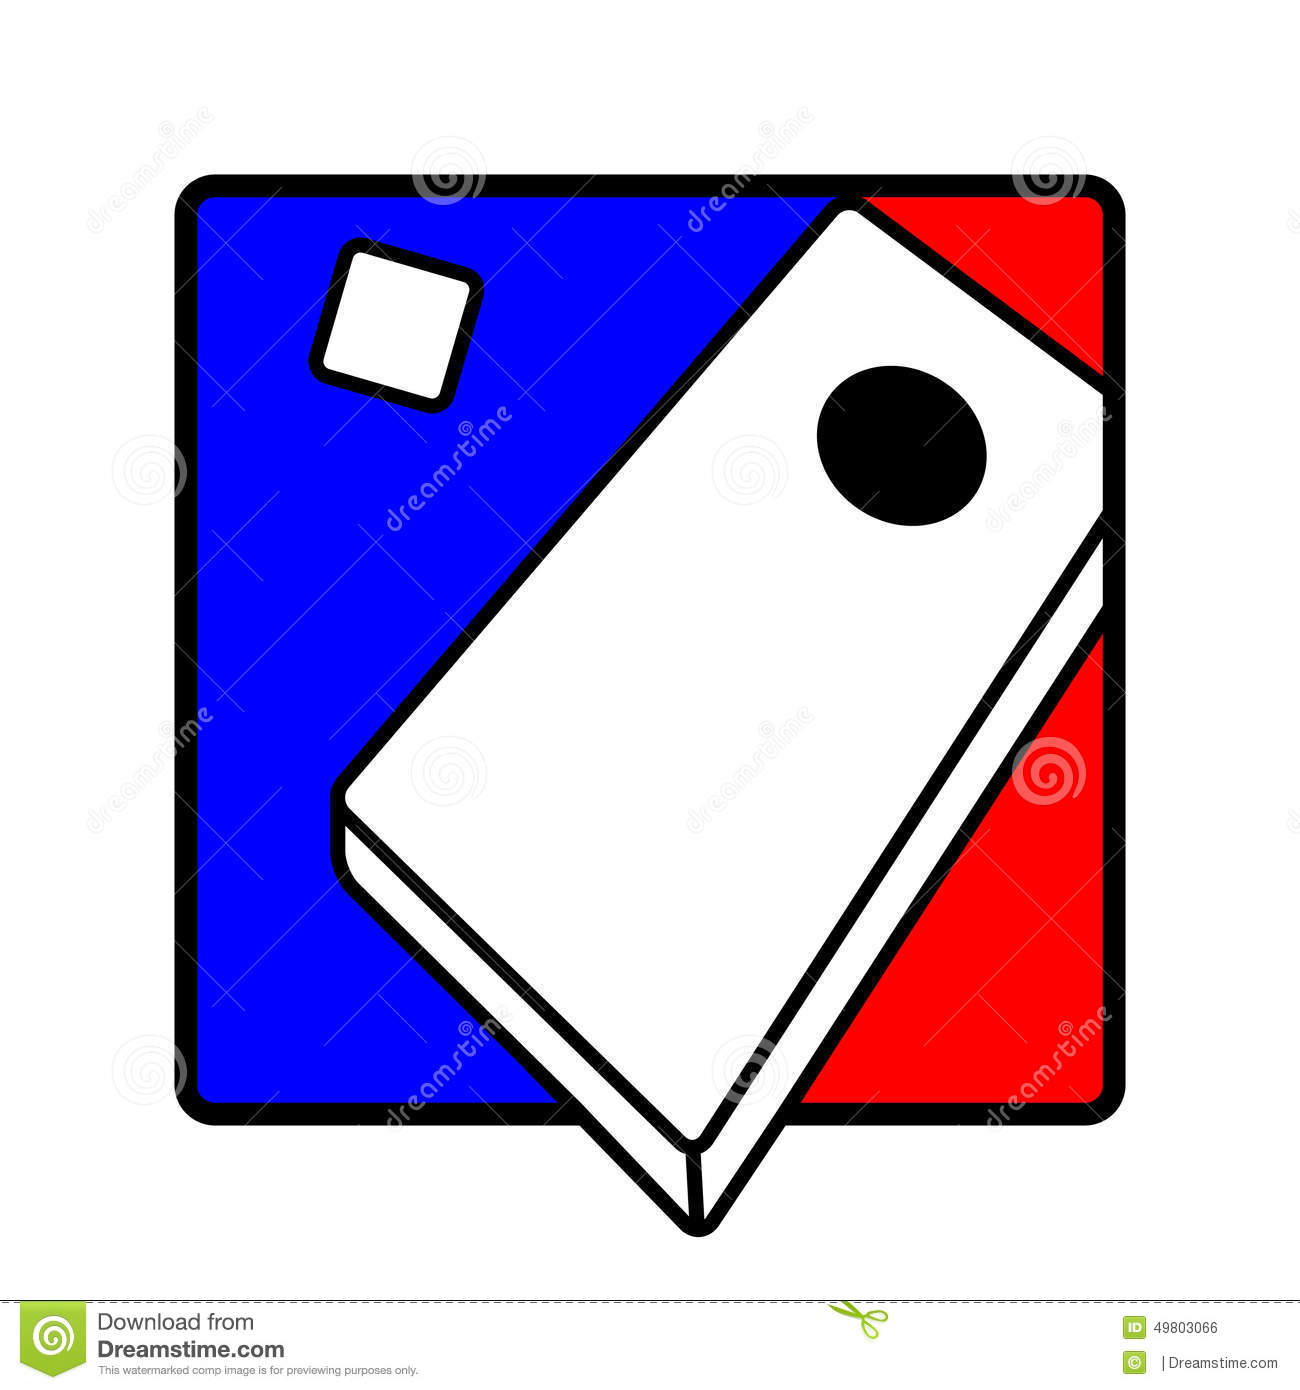 Icon Graphic Of A Corn Hole G - Corn Hole Clip Art